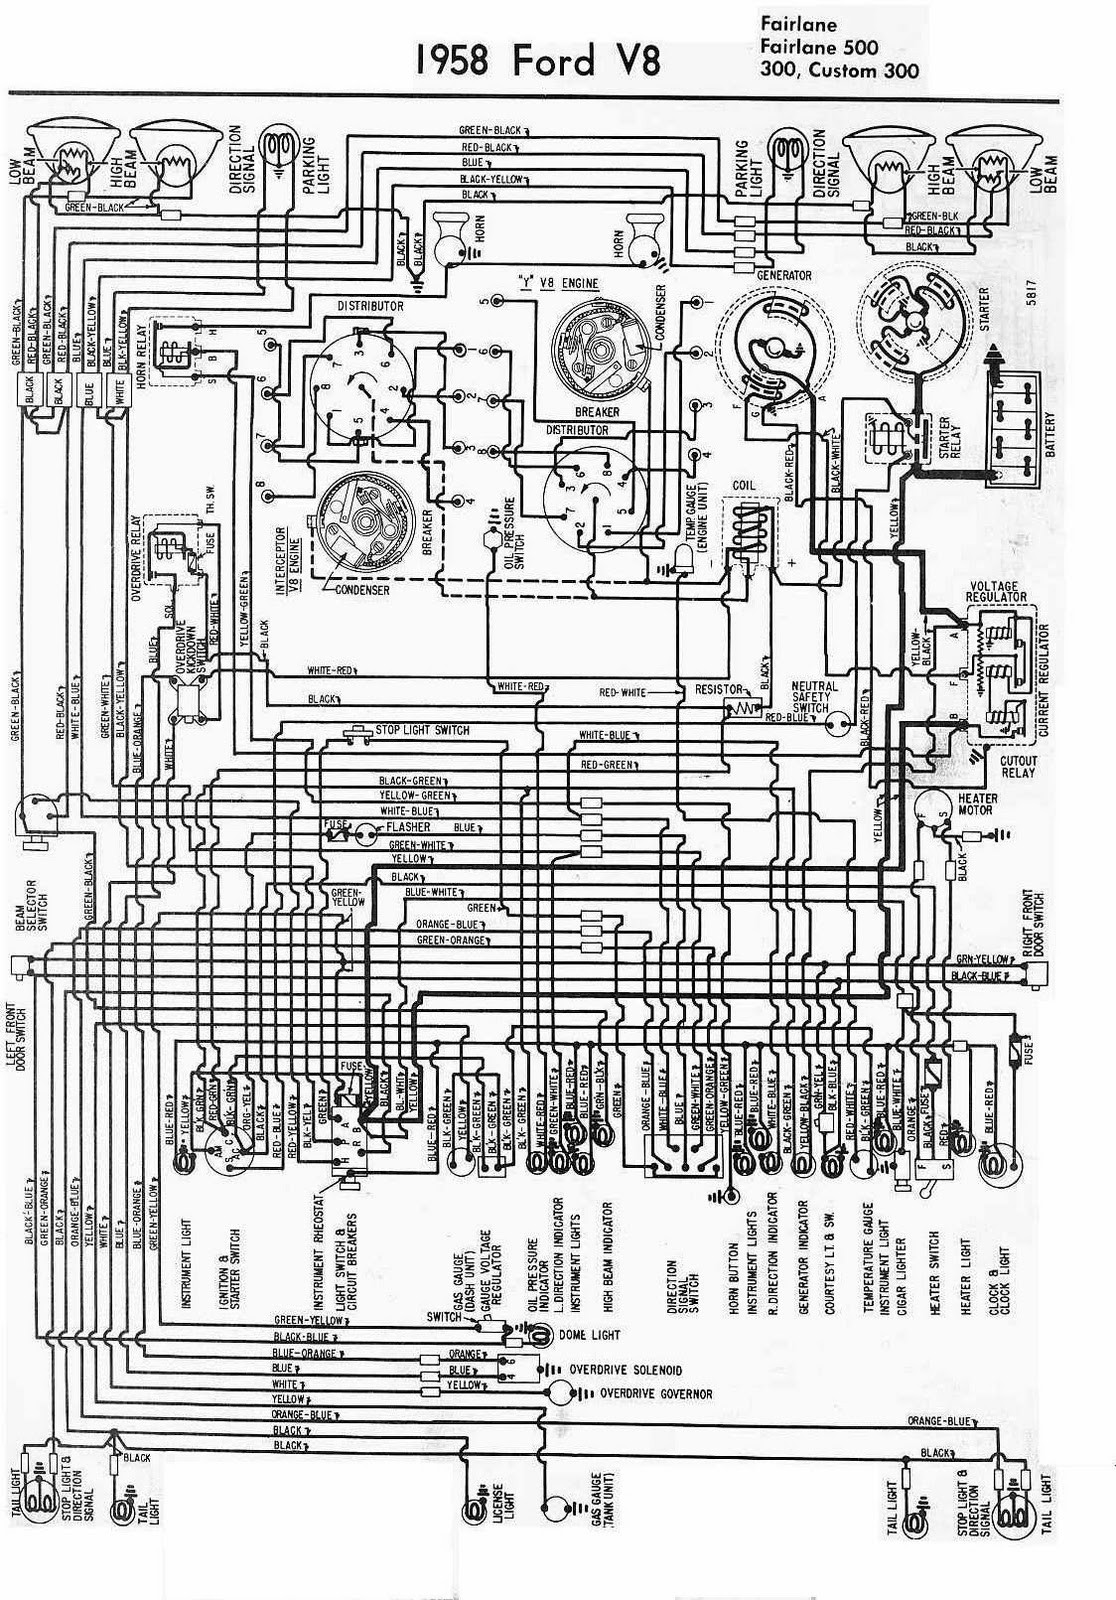 ford ignition switch wiring diagram wiring diagram image 1970 ford ignition switch diagram 1956 t bird wiring diagram diagrams schematics in ford thunderbird light switch wiring diagram 1956 ford